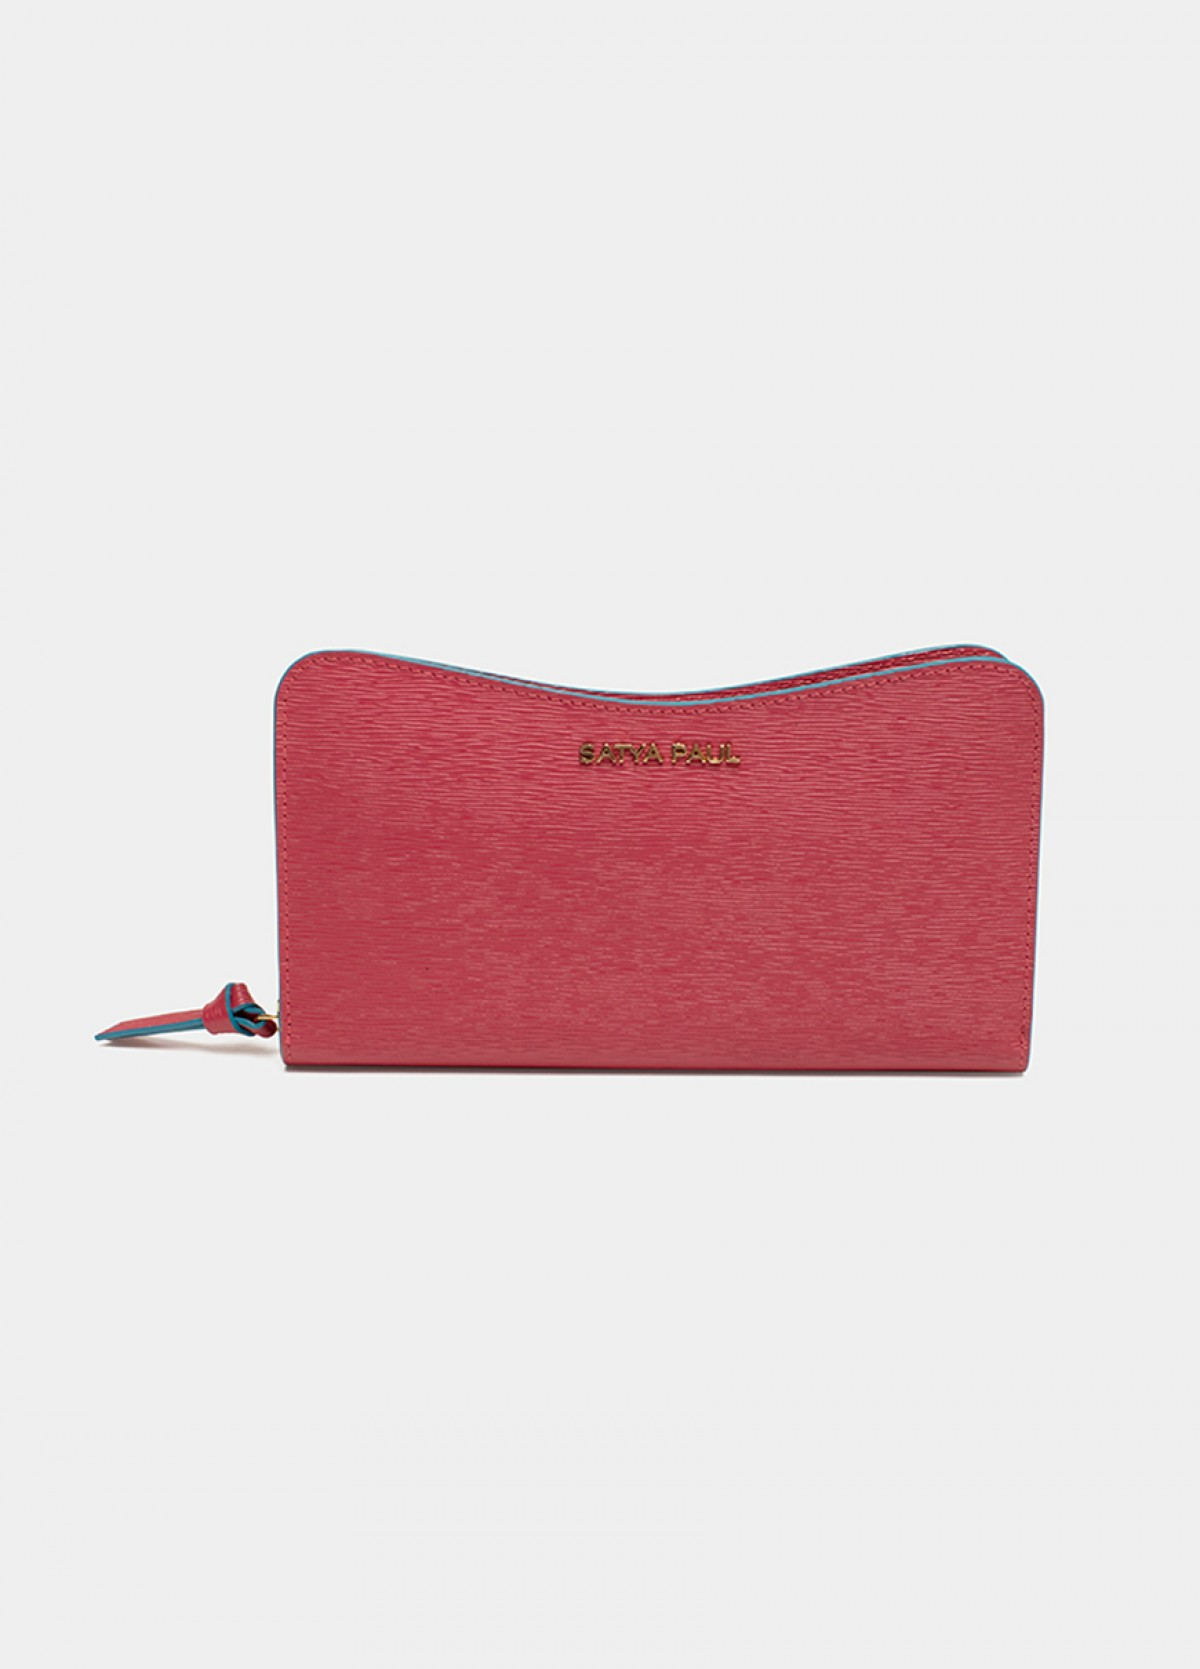 The Nanda Leather Wallet